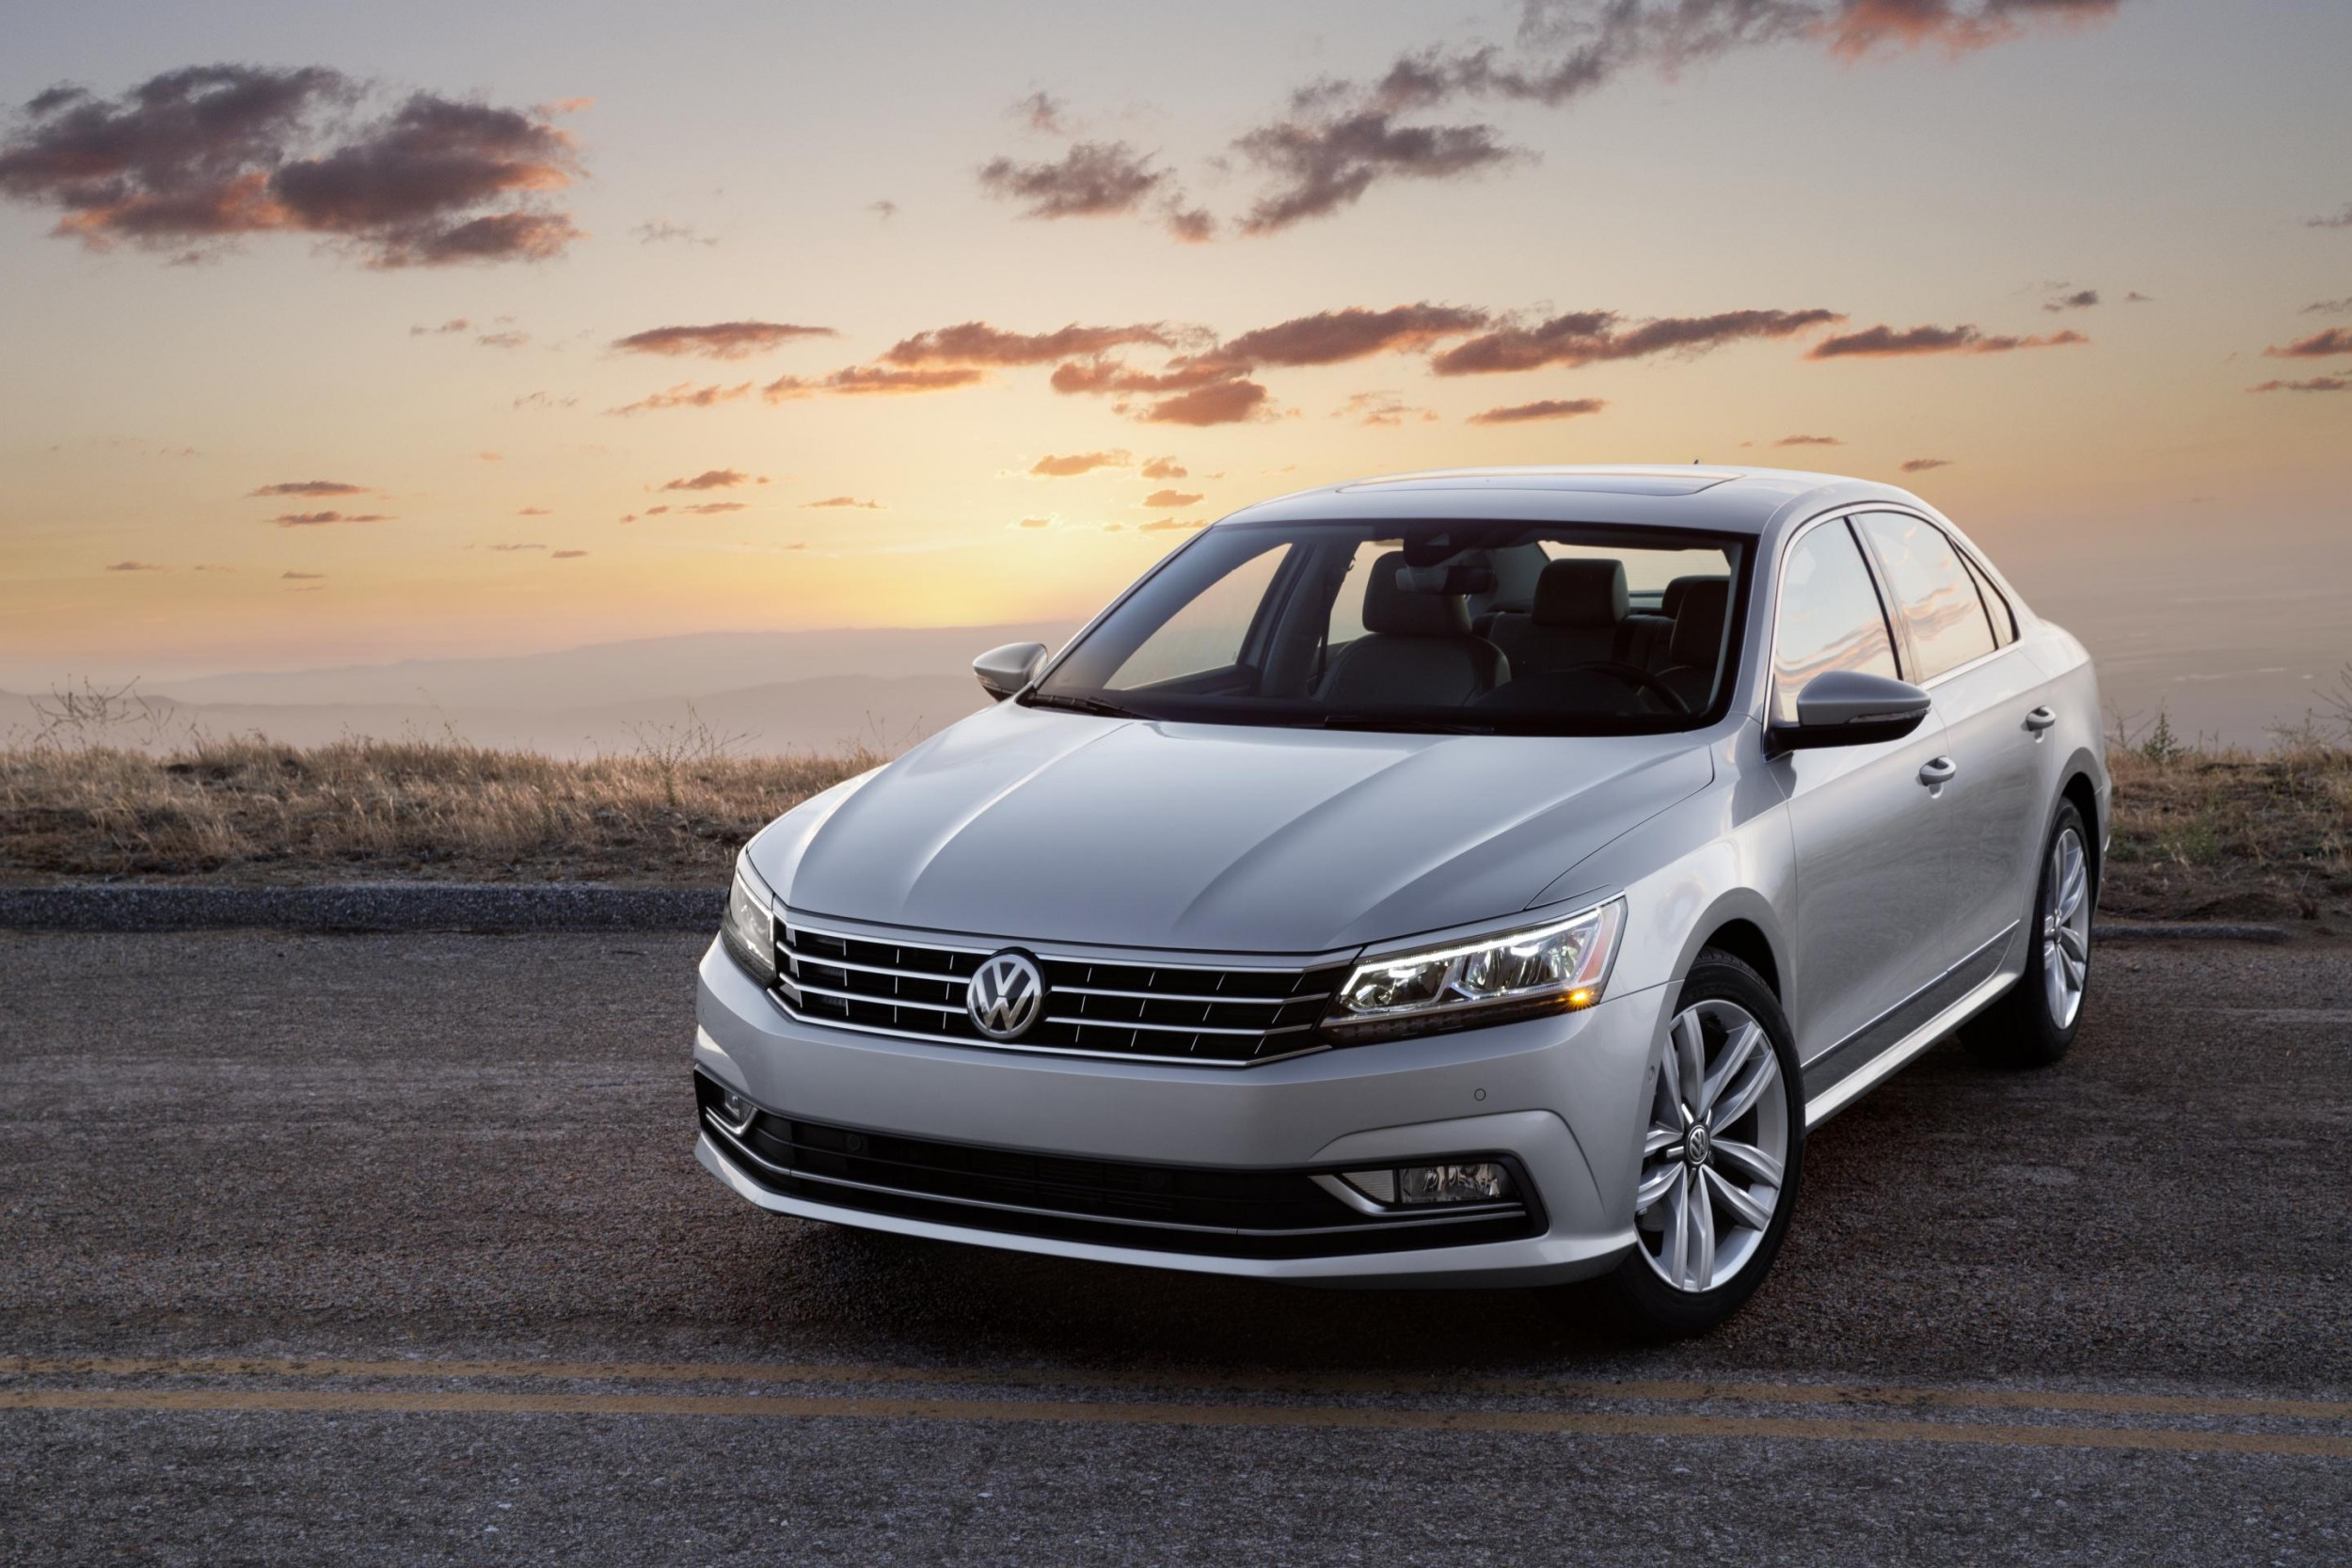 volkswagen reveals pricing for new 2016 passat autotalk. Black Bedroom Furniture Sets. Home Design Ideas